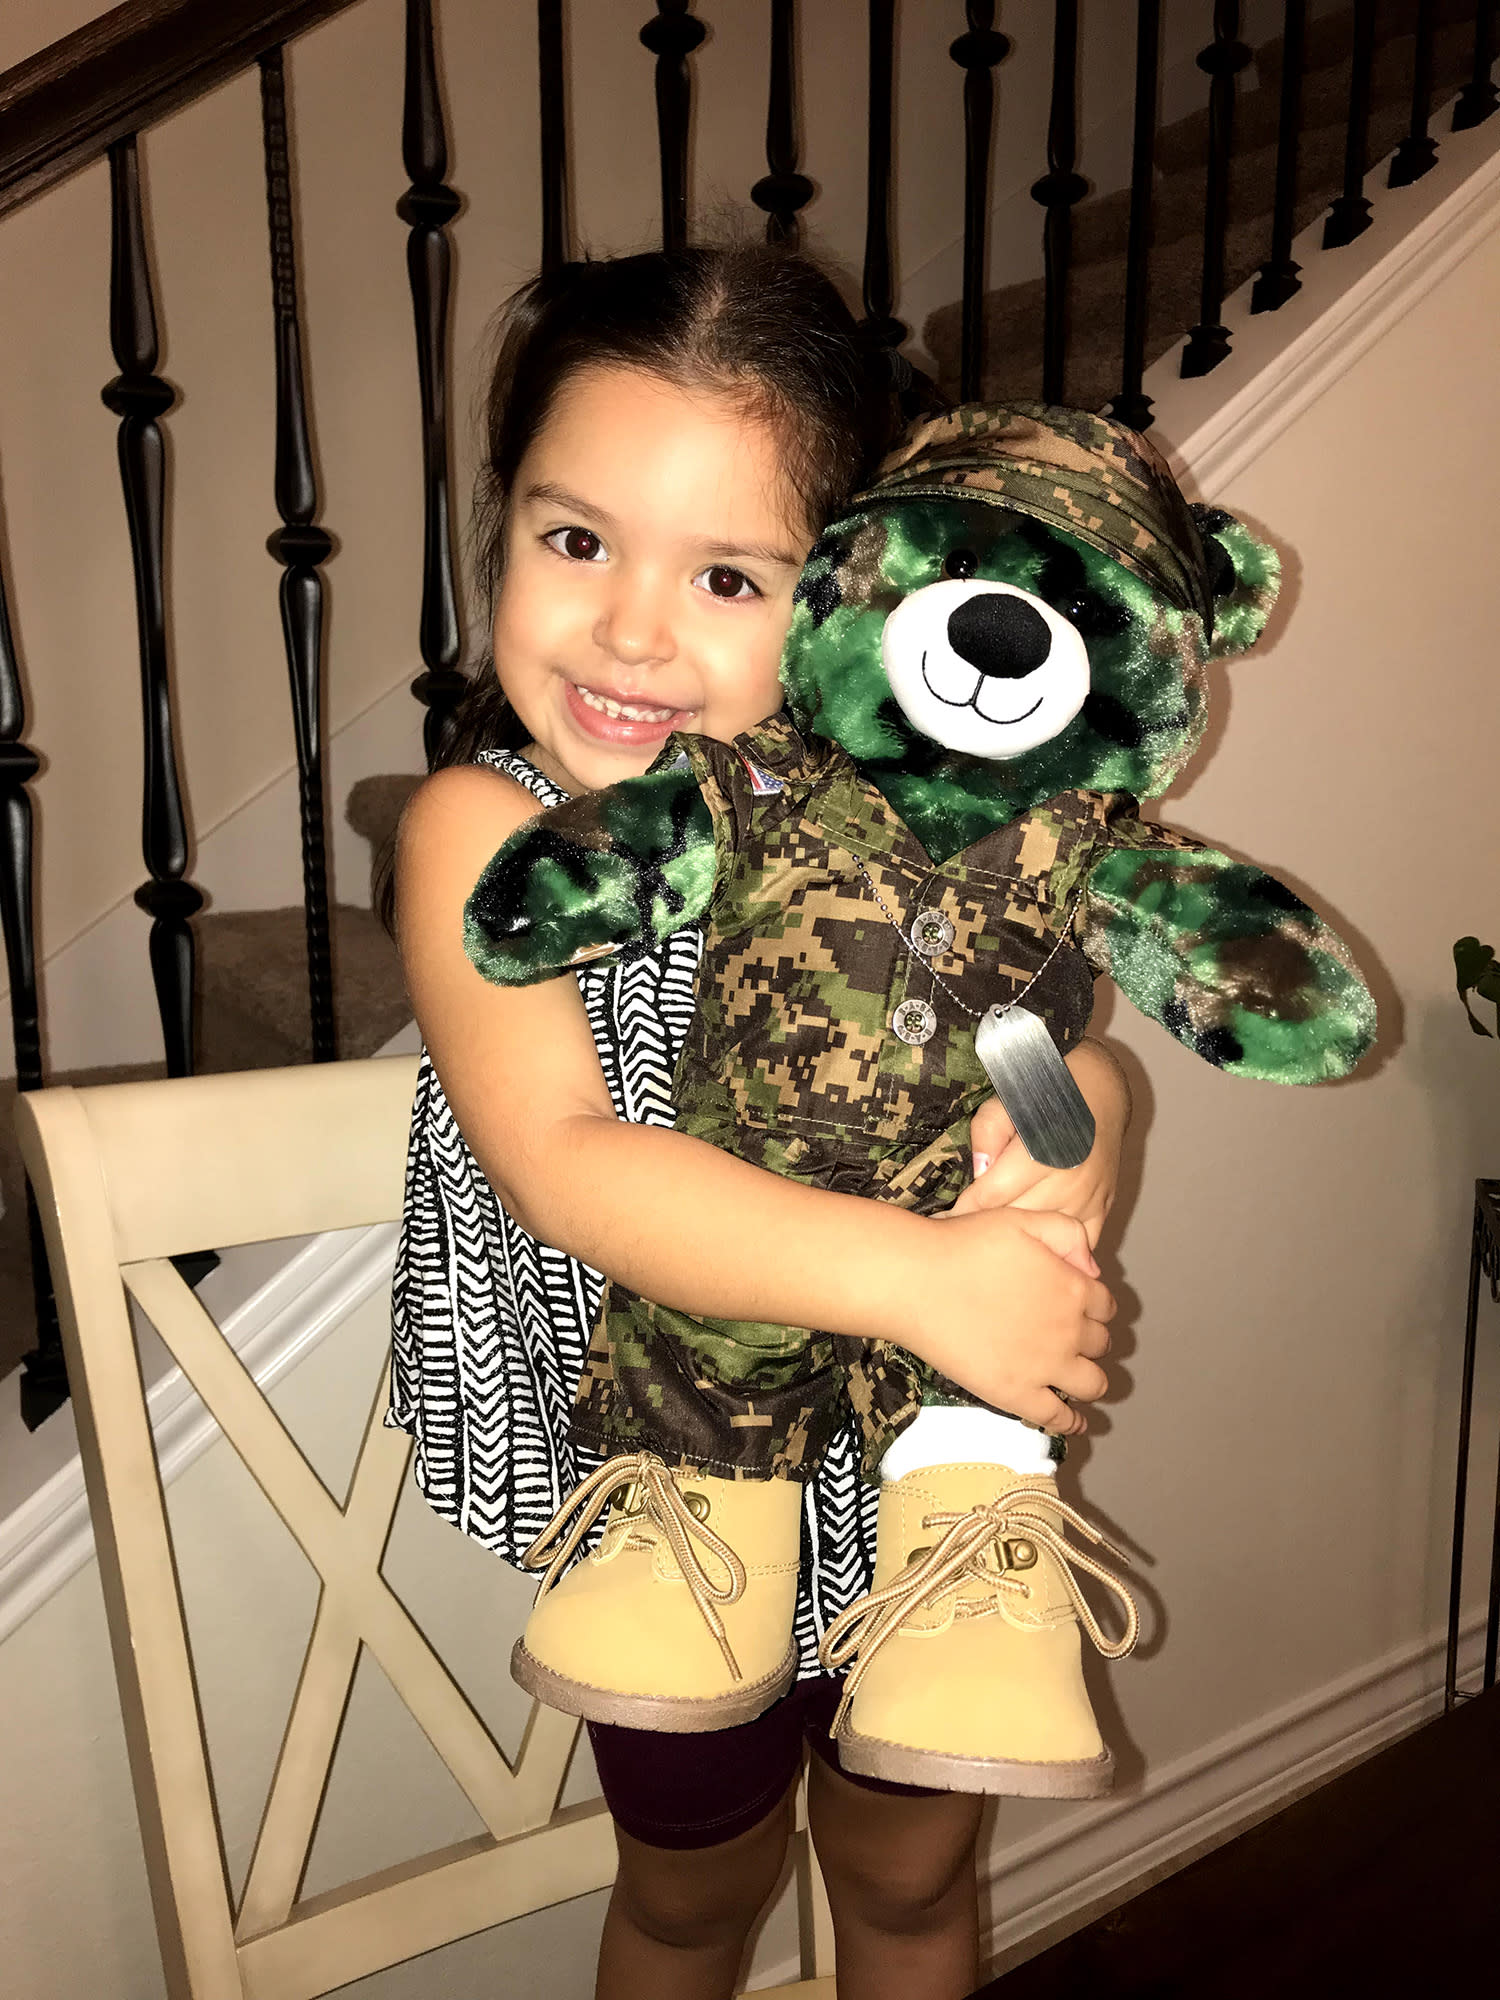 Build A Bear Army Girl Reaction Video Video - Little girls reaction to seeing her parents clearly for the first time is adorable